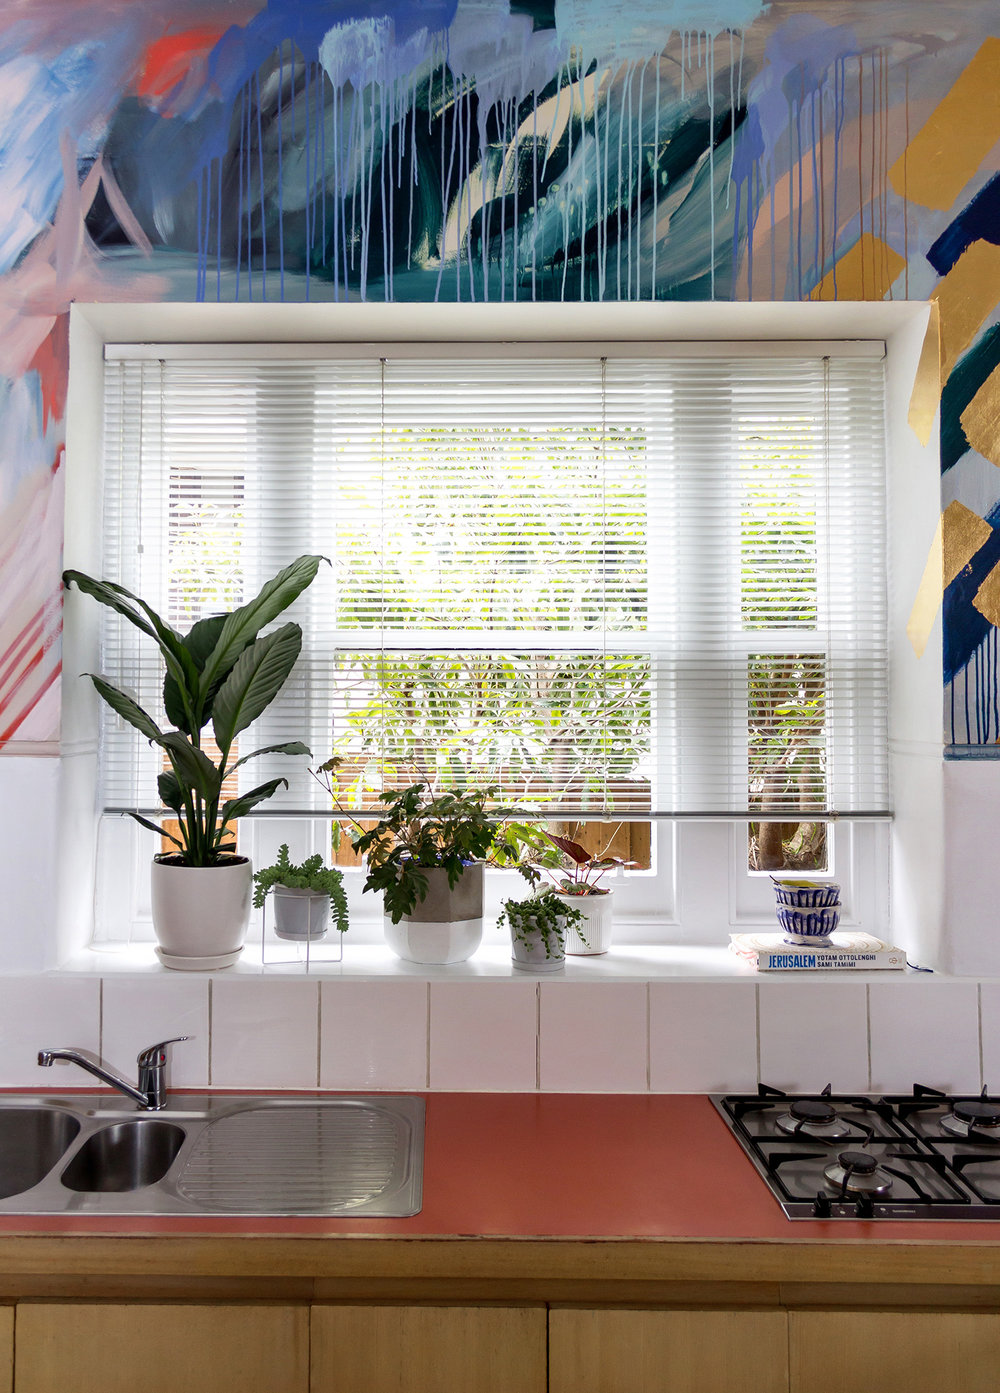 Modern, clean styled kitchen featuring gorgeous abstract mural with gold leaf geometric shapes, contemporary and fresh feel with green plants on windowsill.